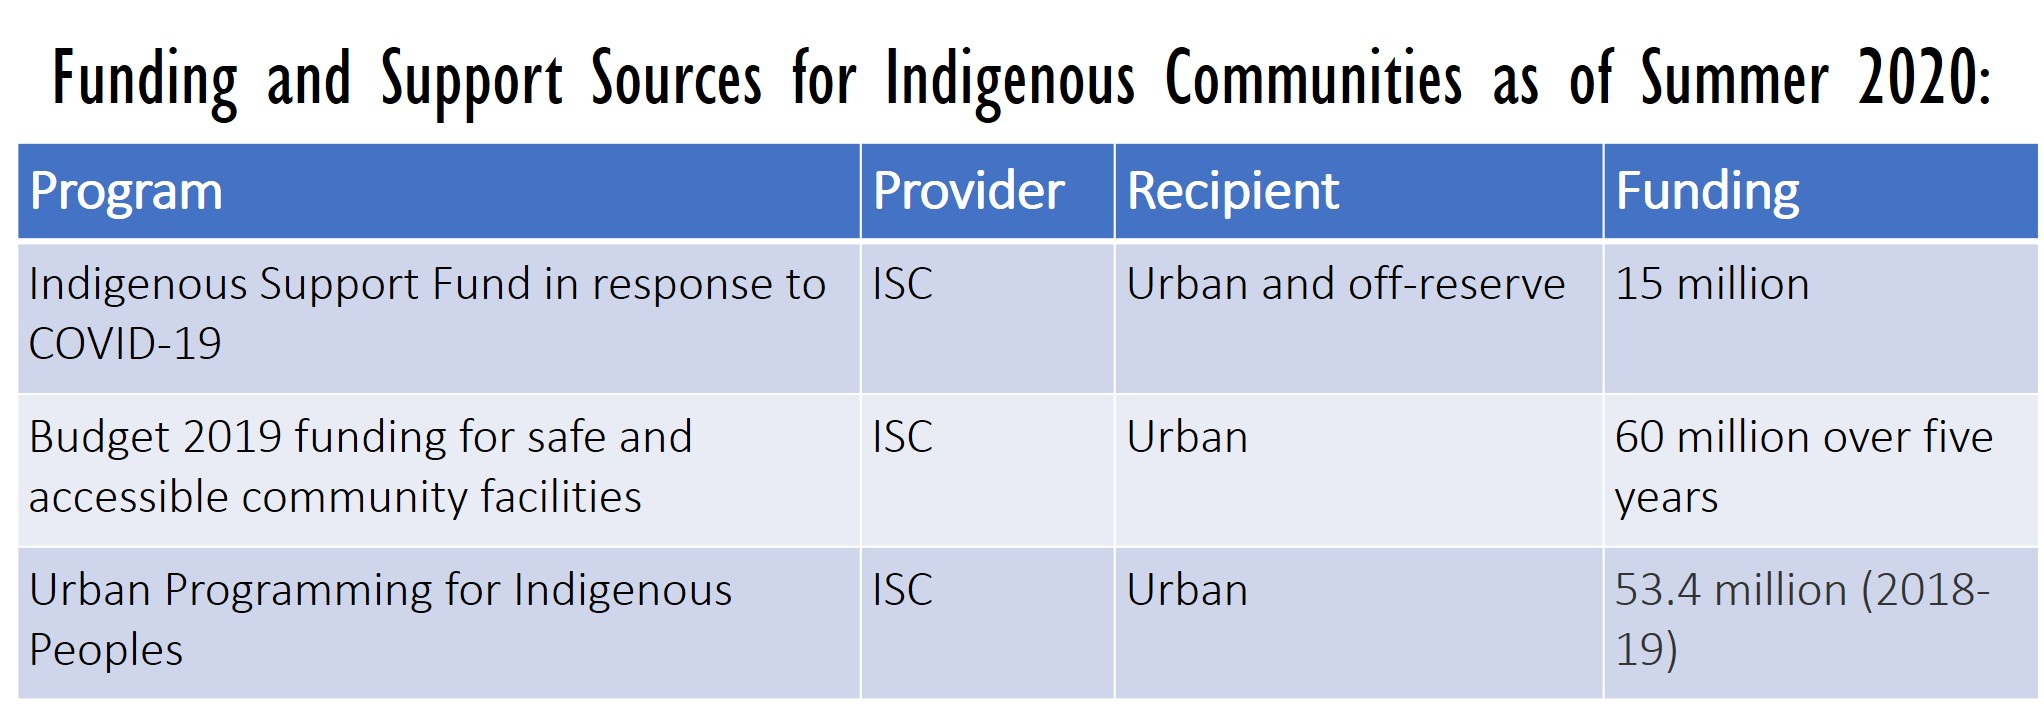 Funding and Support Sources for Indigenous Communities as of Summer 2020